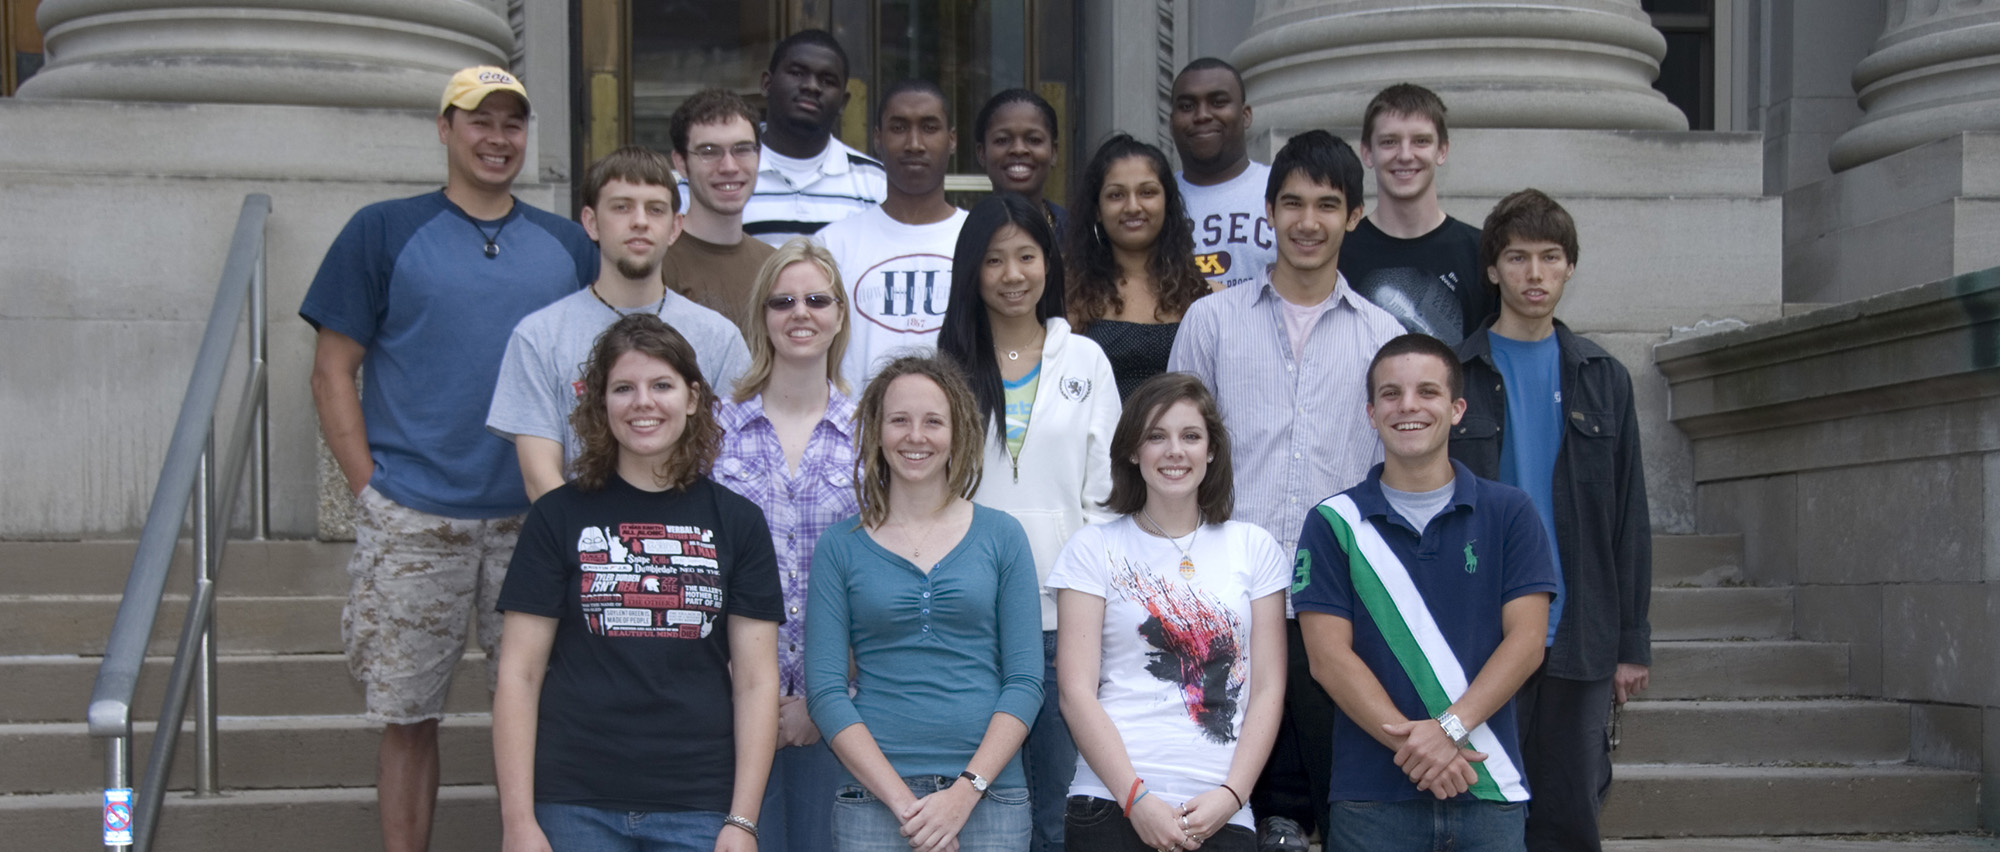 2008 Research Experience for Undergraduates Participants